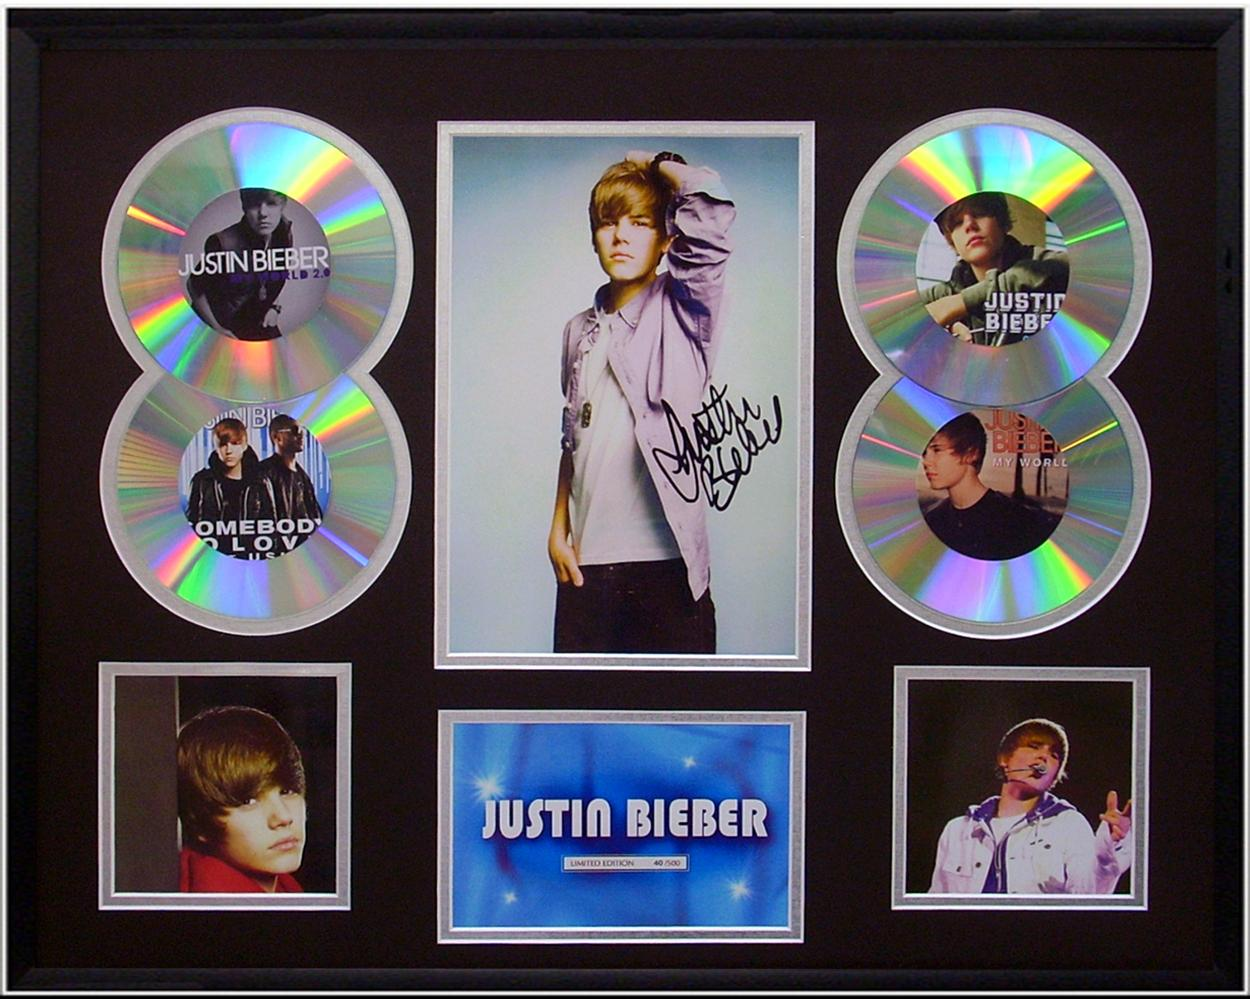 Justin-Bieber-framed-Limited-Ed-signed-CD-Photo-Display